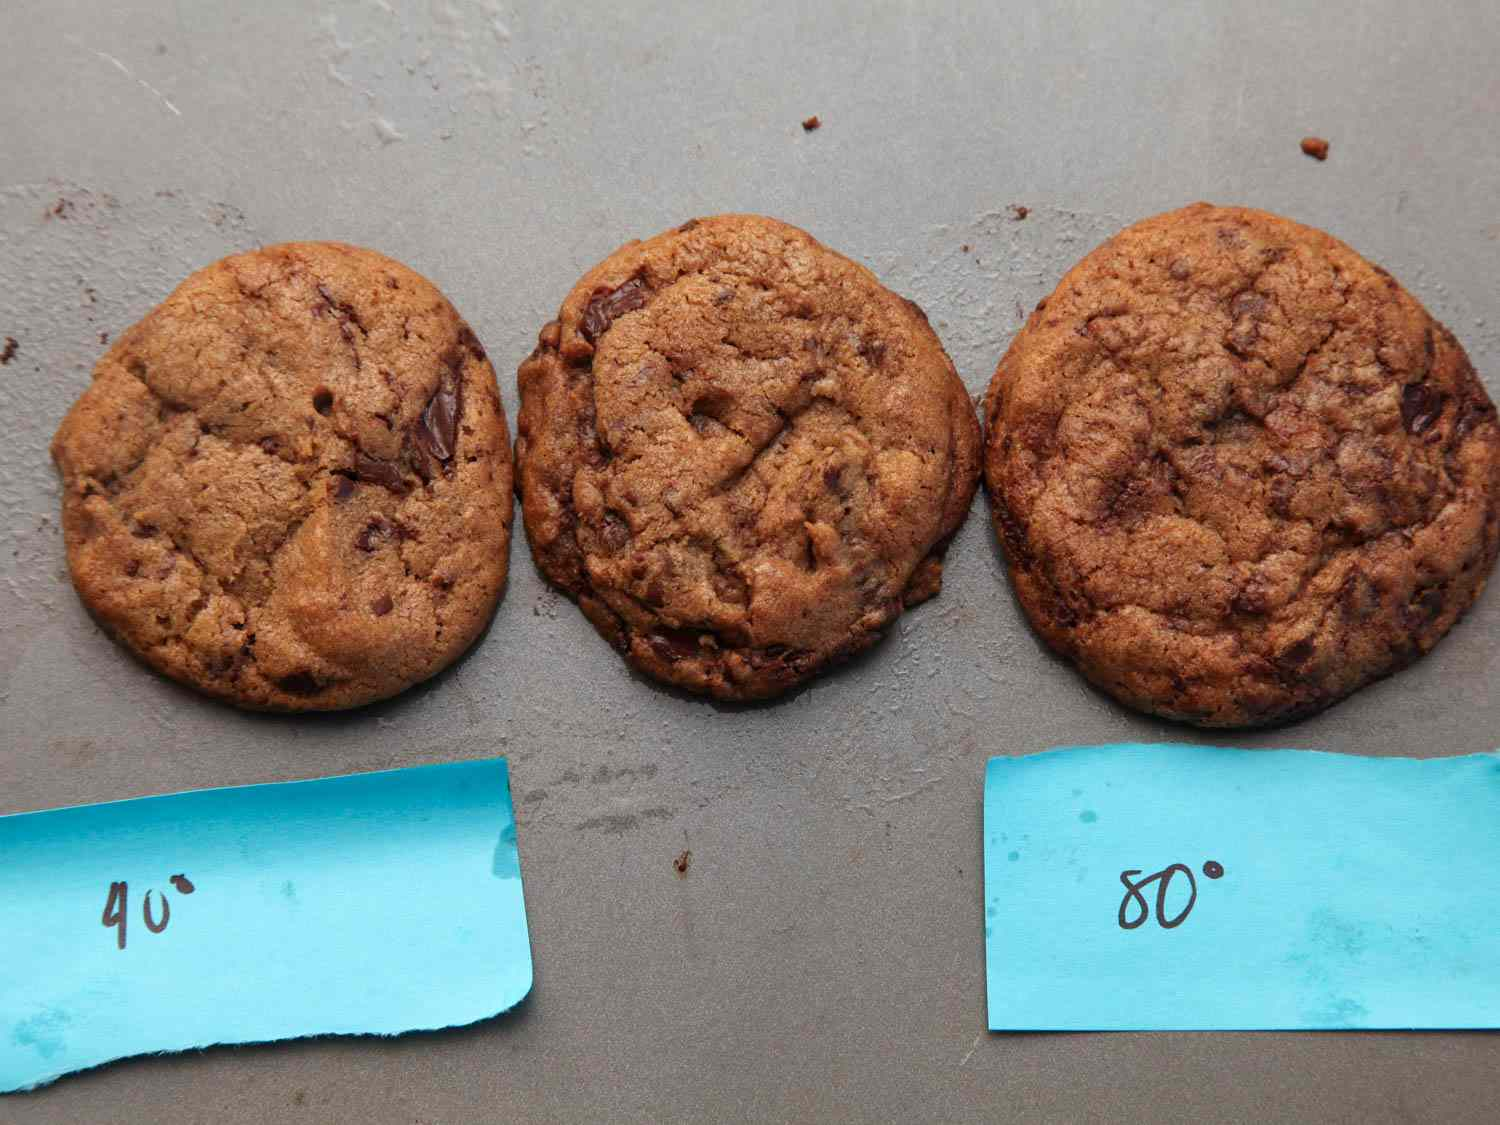 Side-by-side photograph showing three cookies baked at various starting dough temperatures.